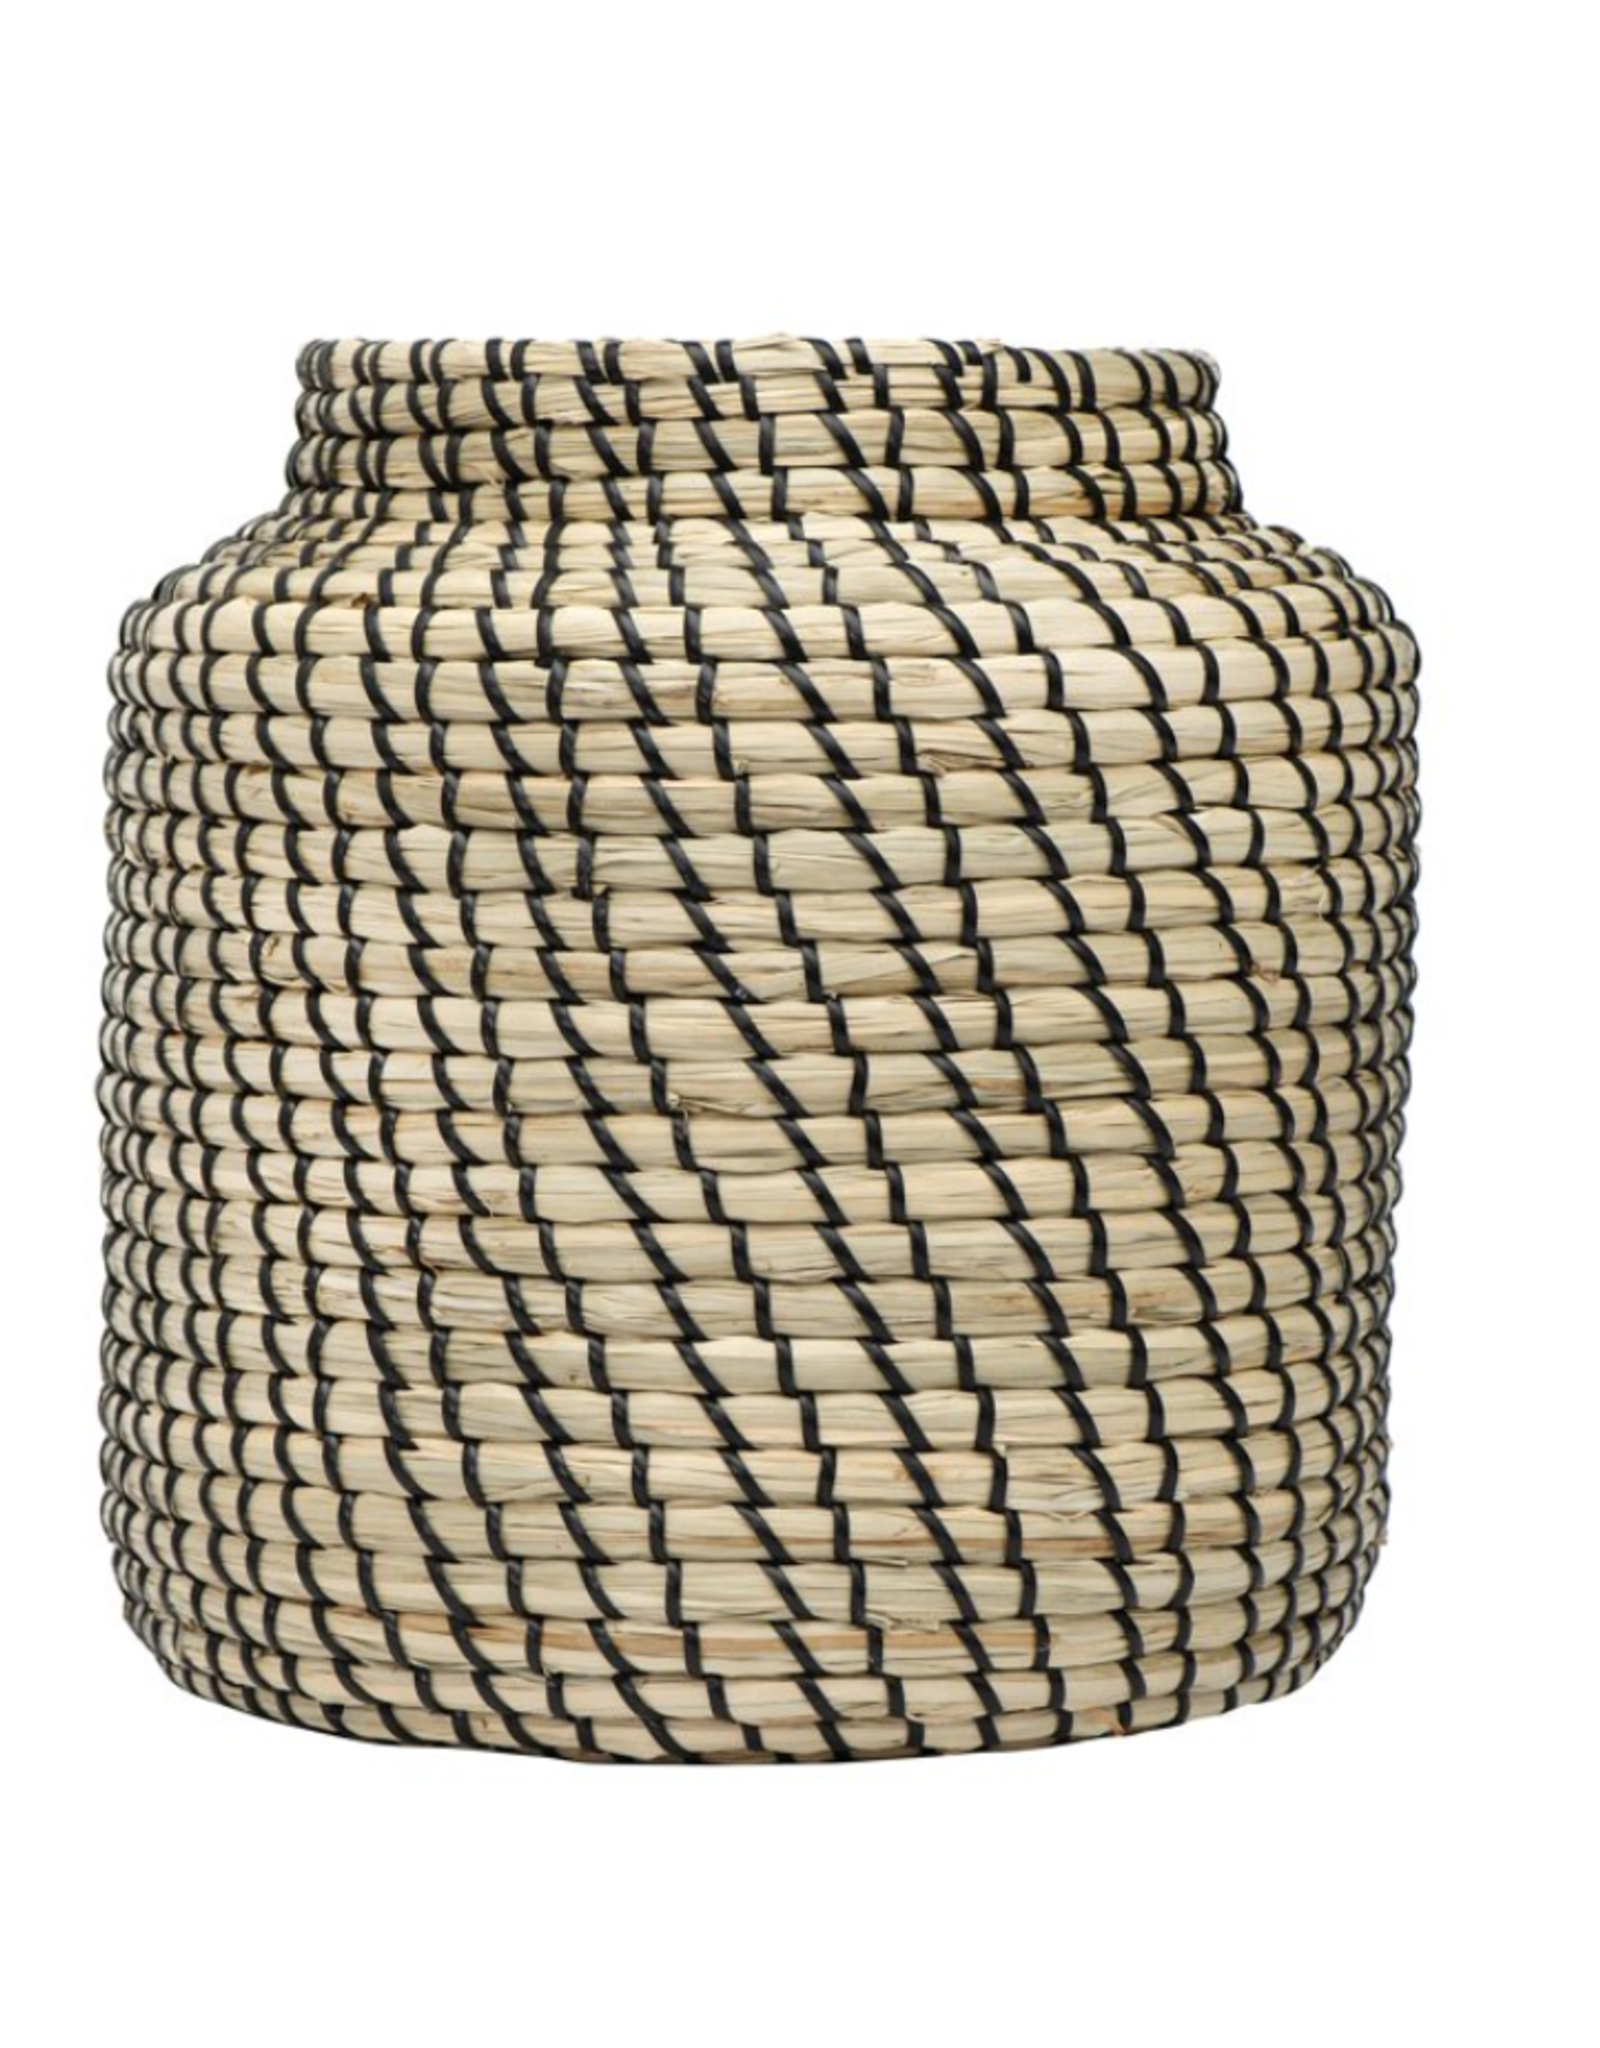 """HAND WOVEN SEAGRASS BASKET - NATURAL AND BLACK 11"""" ROUND X 11-3/4""""H"""